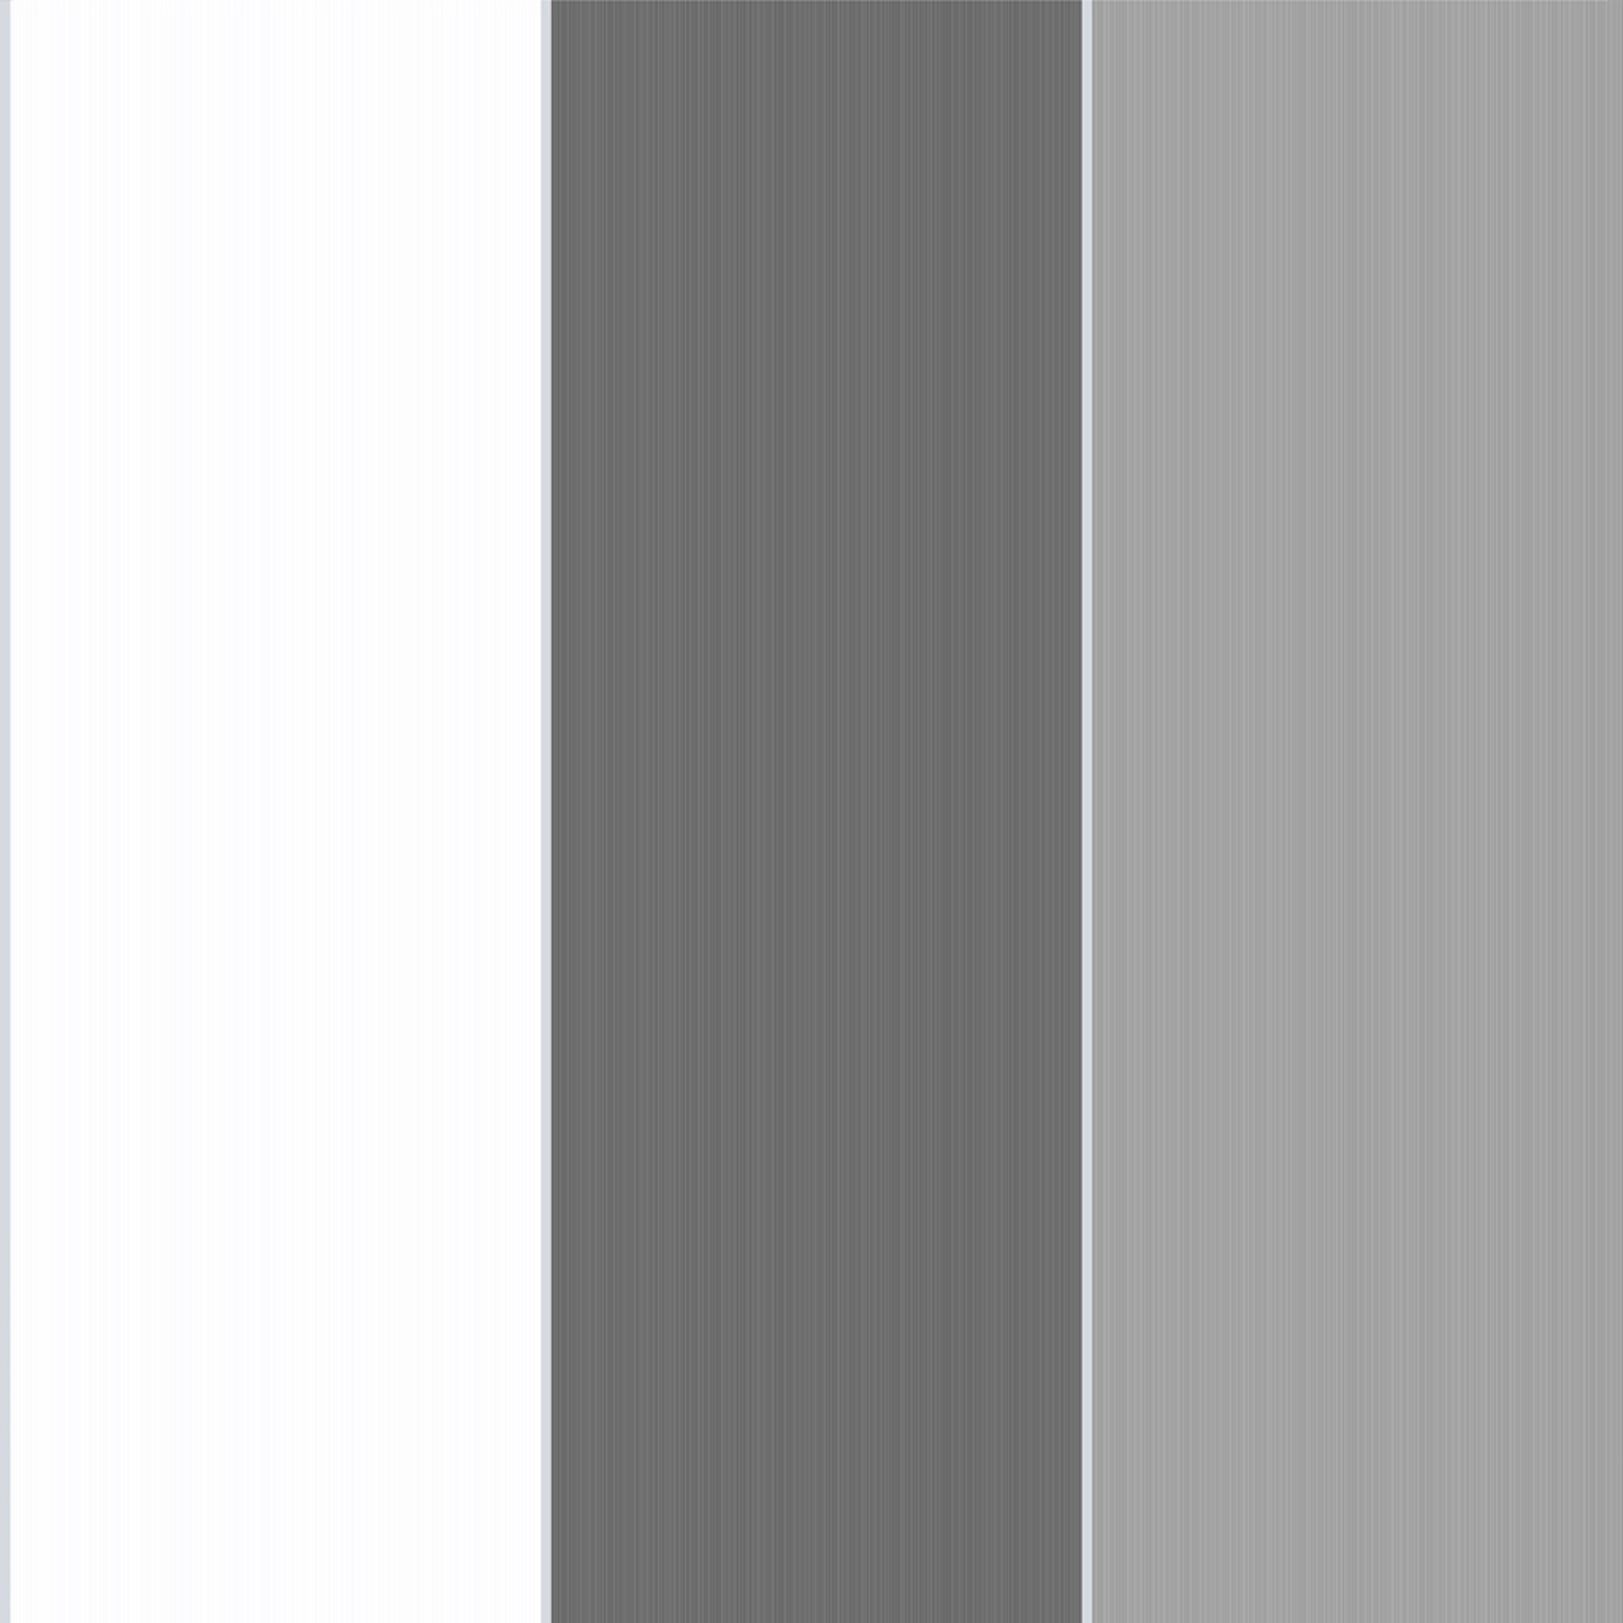 Colours Unity Grey White Stripe Wallpaper Departments Diy At B Q Mobilewallp Grey And White Wallpaper Grey And White Striped Wallpaper Striped Wallpaper